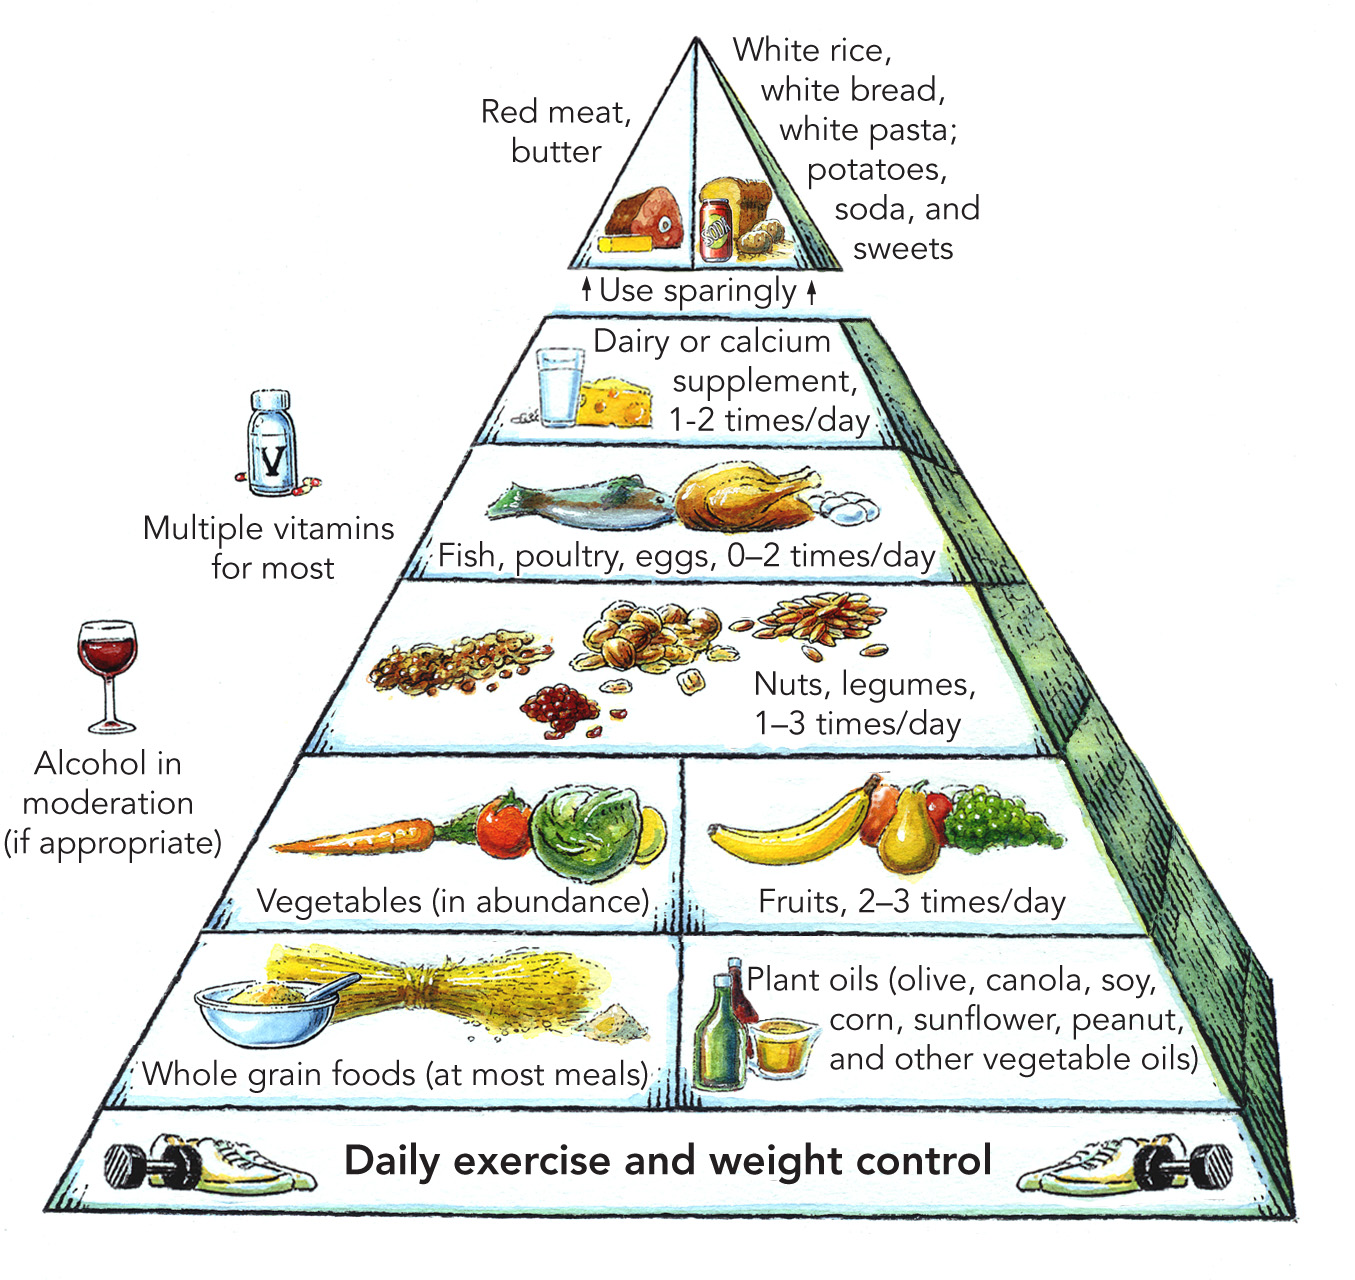 Problems with the Pyramid - Harvard Health